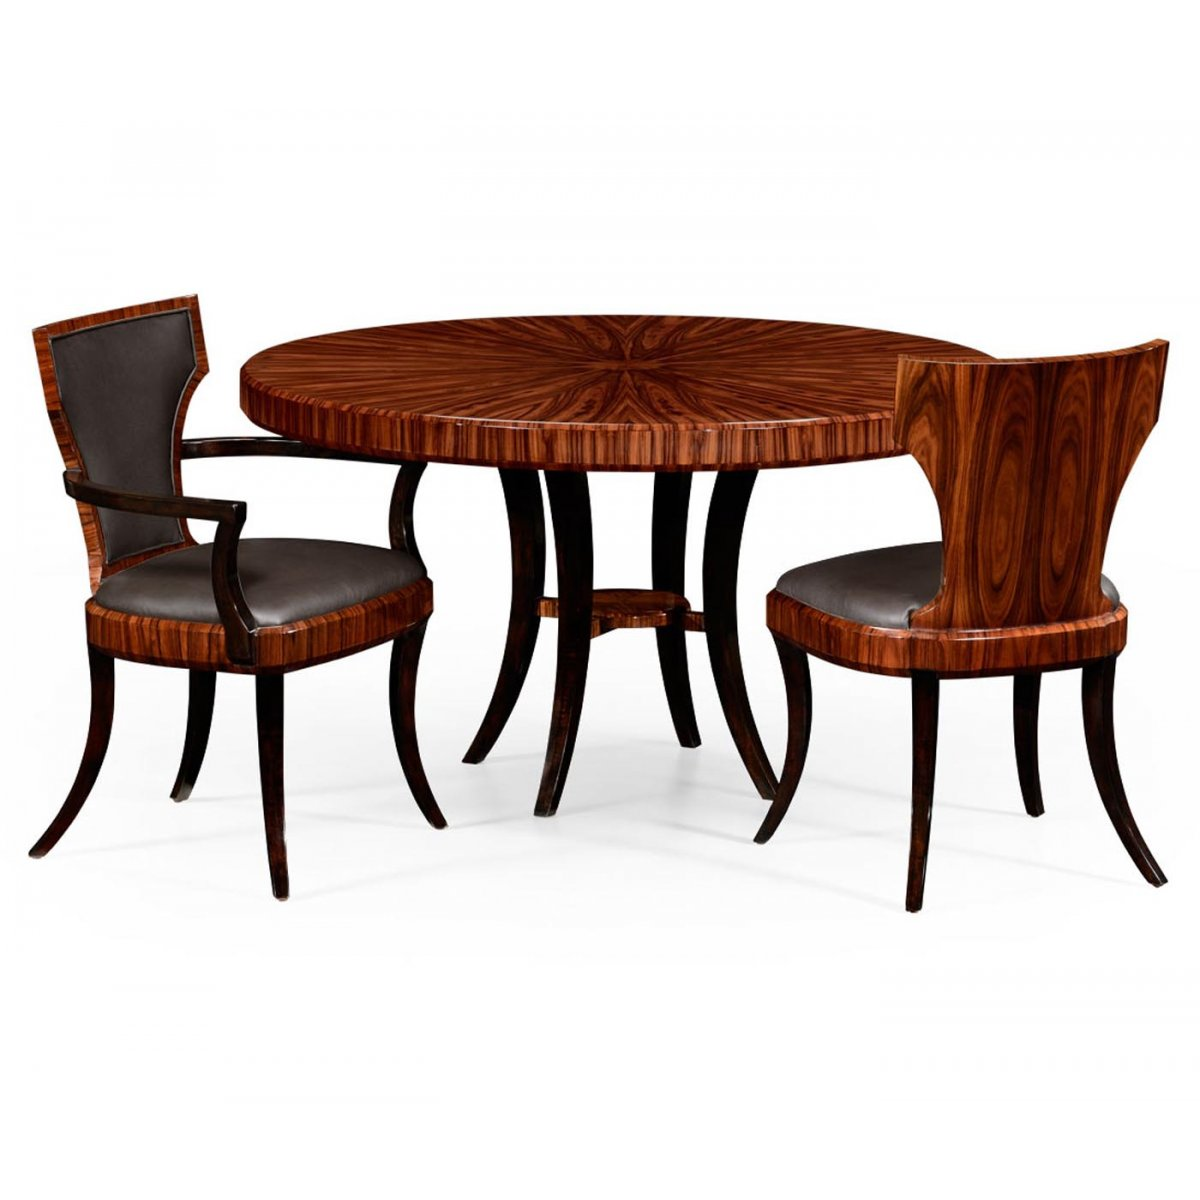 6 seater round dining table swanky interiors - Seater dining tables ...